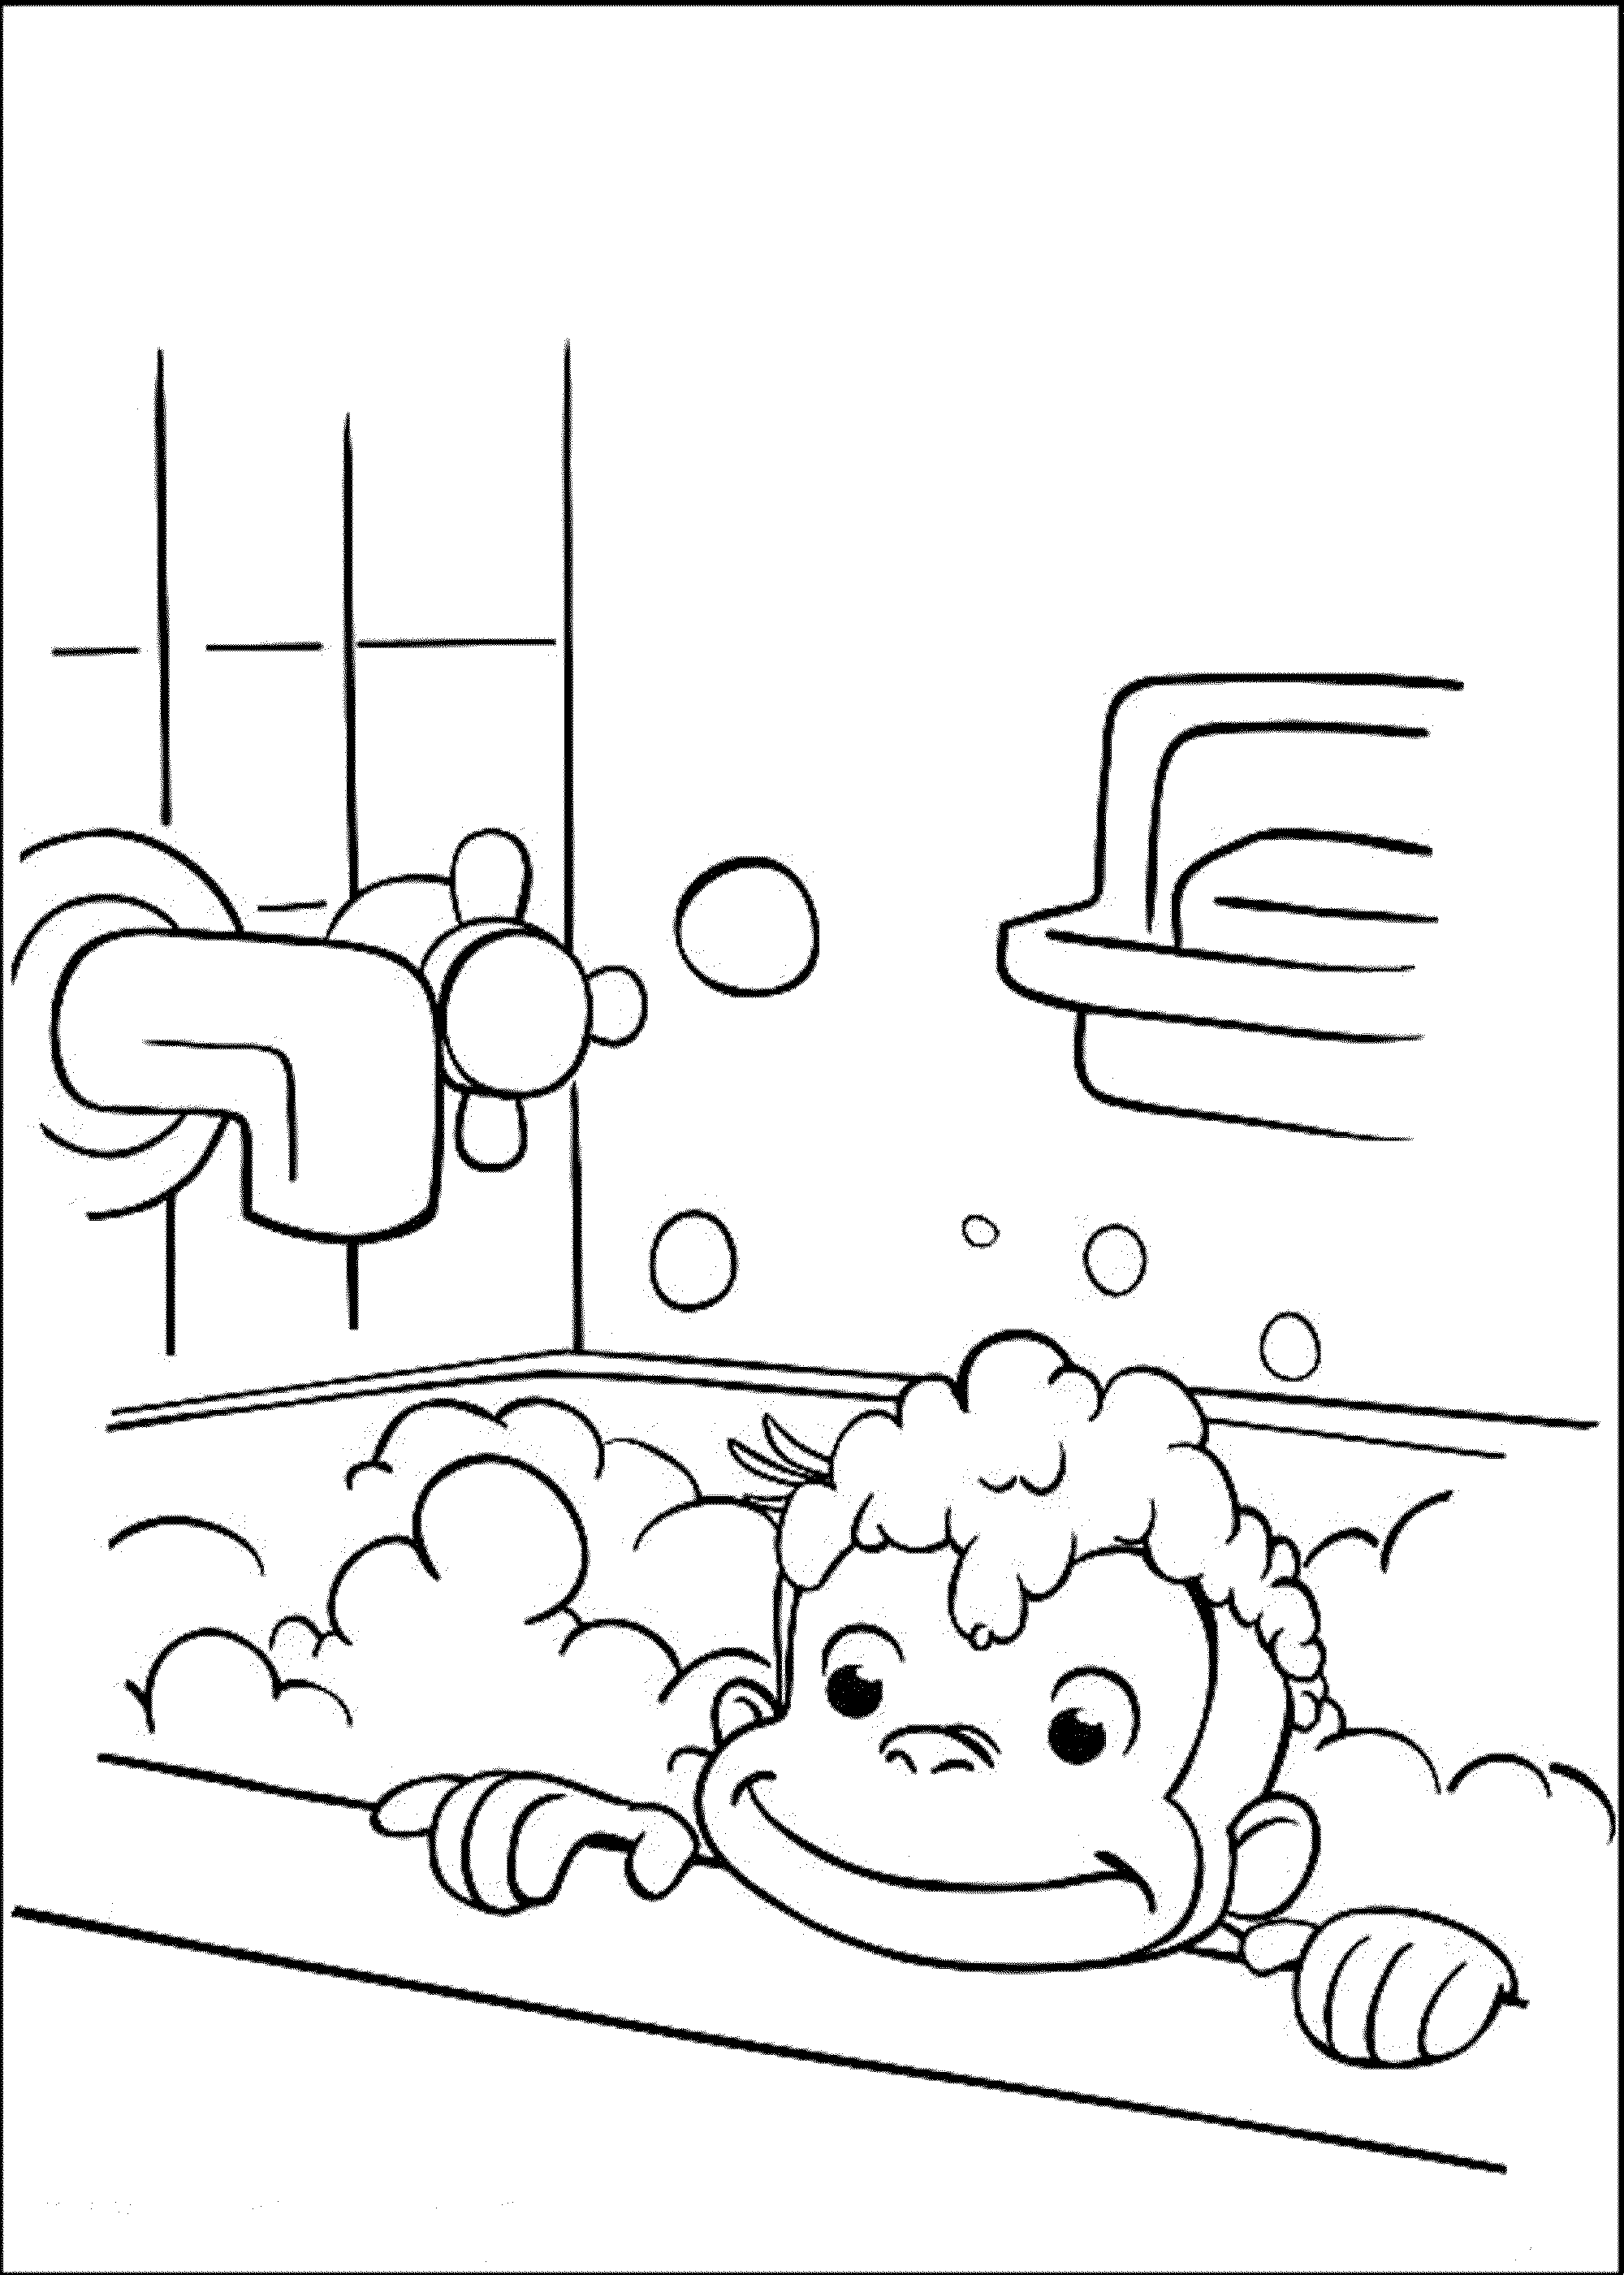 curious-george-take-a-bath-coloring-pages | | BestAppsForKids.com